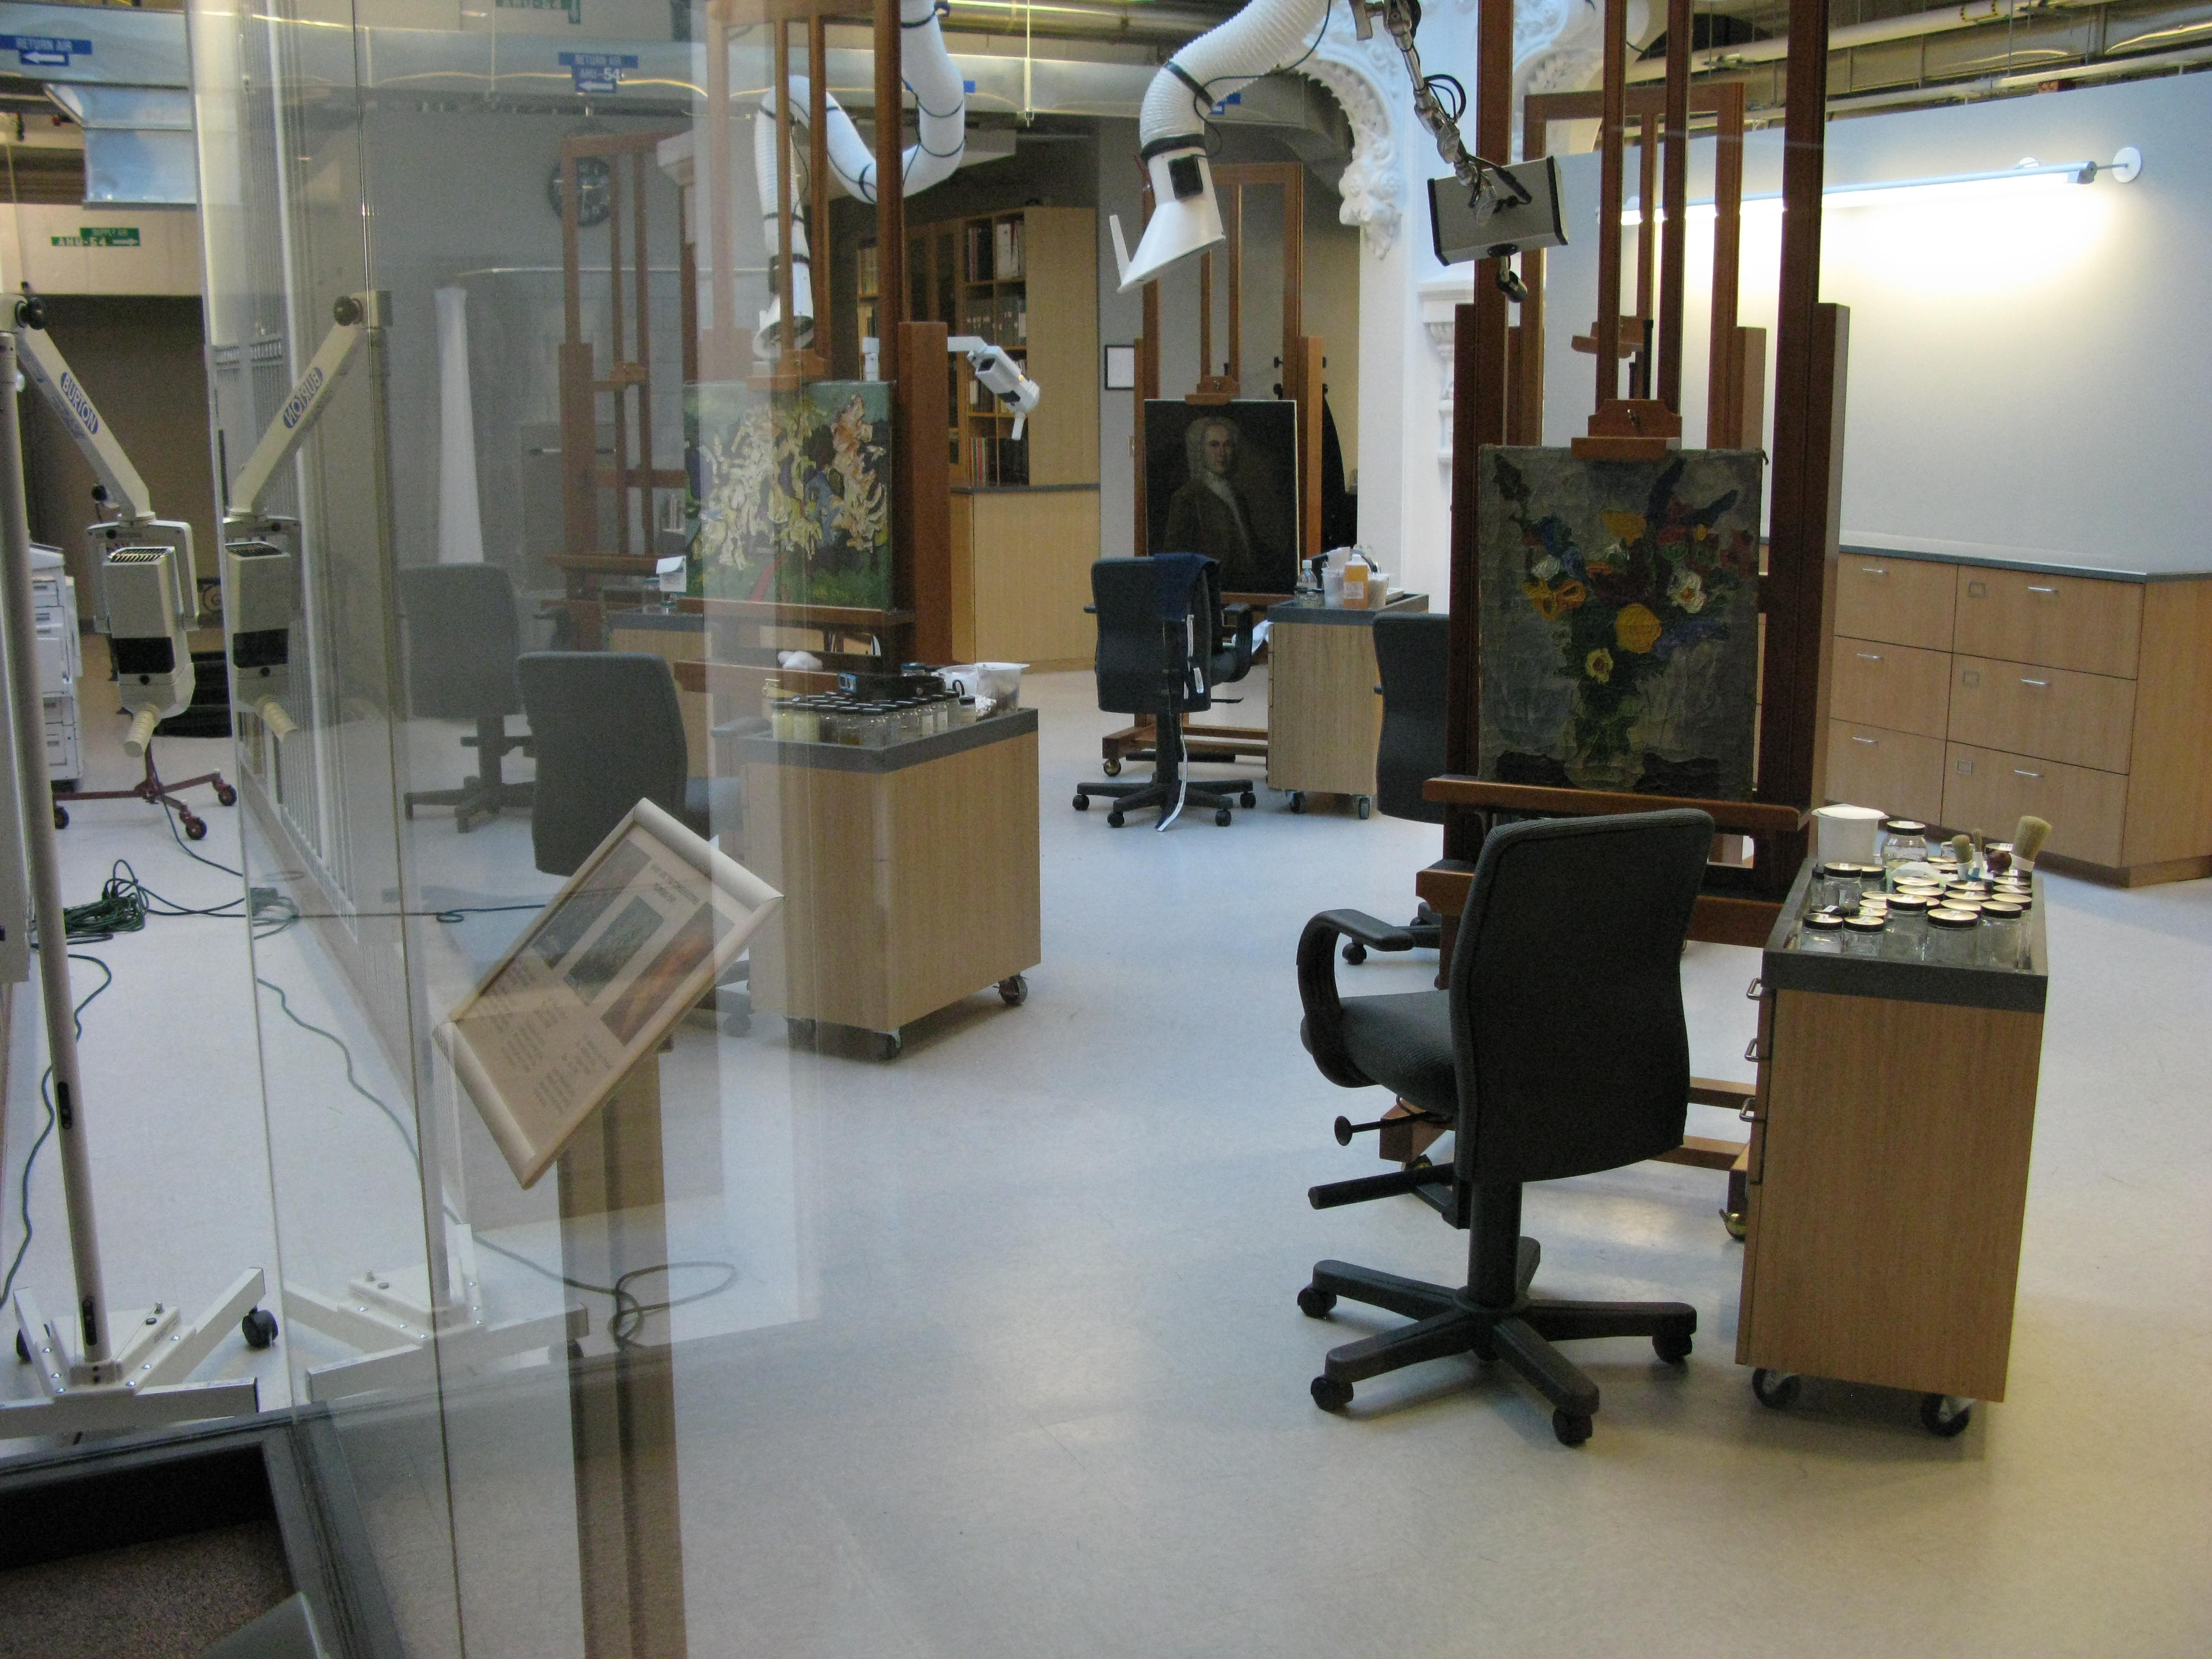 Lunder Conservation Center Laboratory where the public is shown behind-the-scenes views of essential art preservation work. Image by davidgalestudiosCamera. Licensed under CC BY-SA 2.0 via Wikimedia Commons.